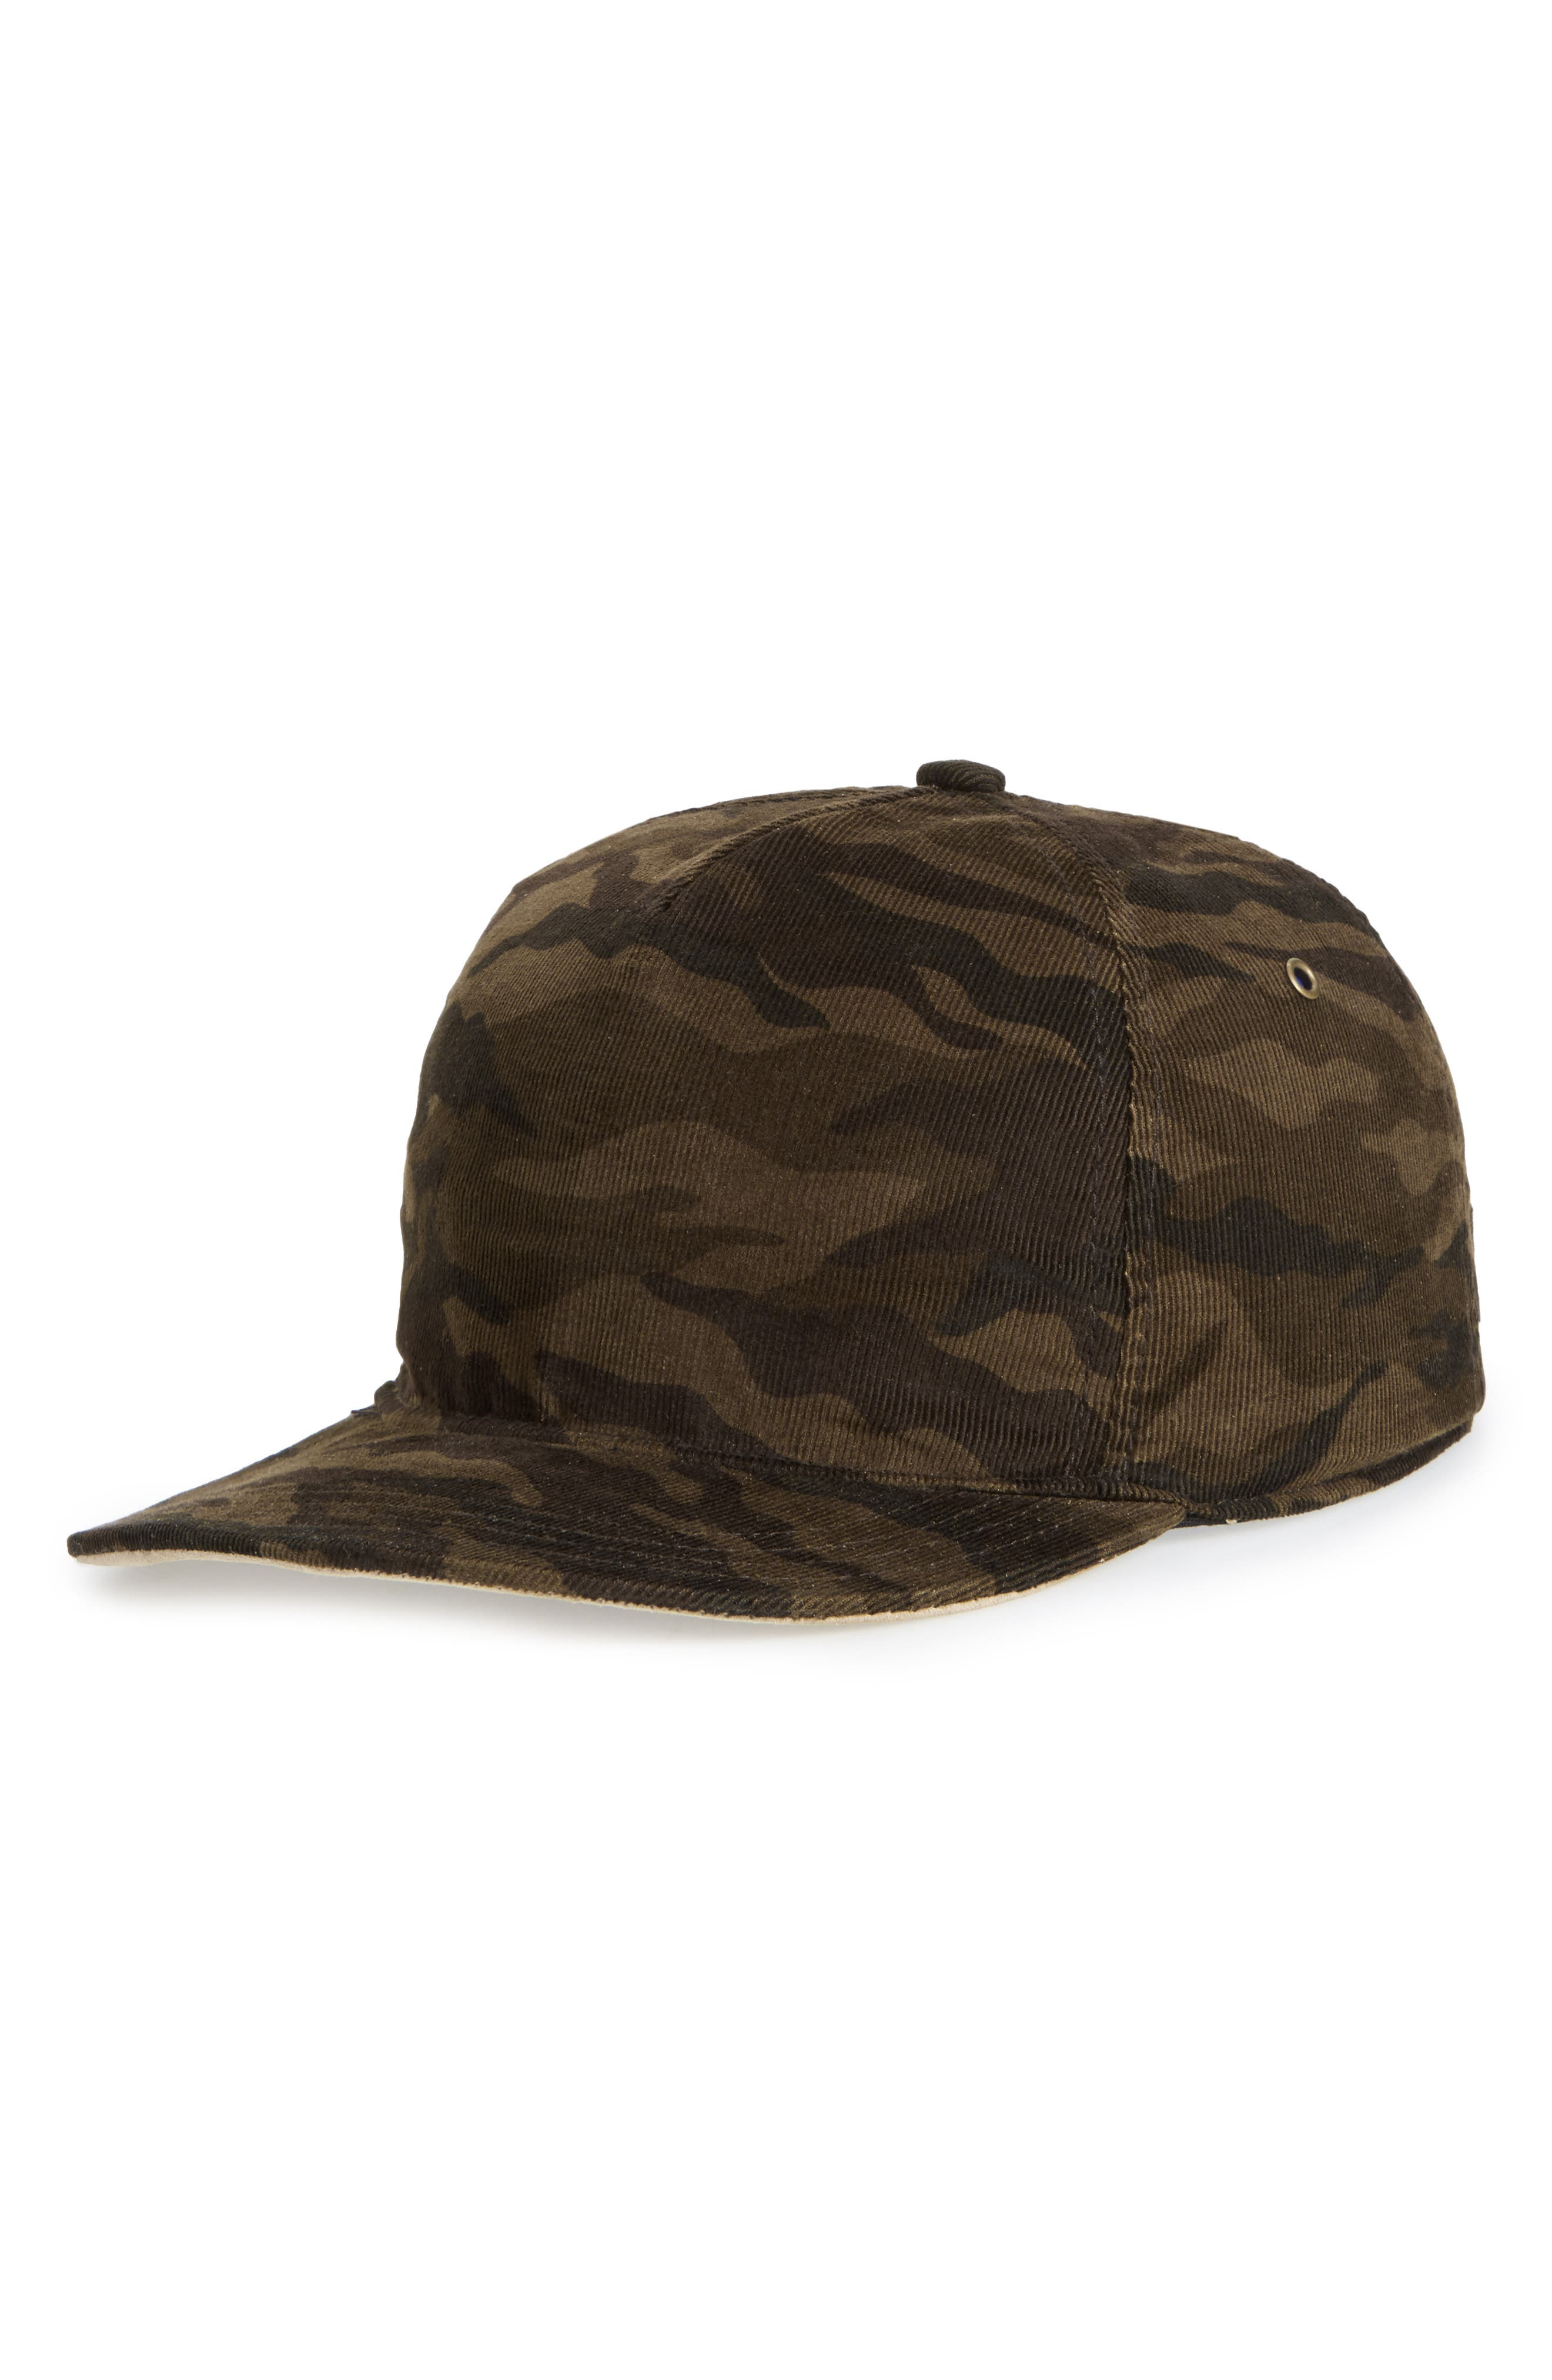 Alternate Image 1 Selected - Goorin Brothers The Hunt Camo Corduroy Ball Cap